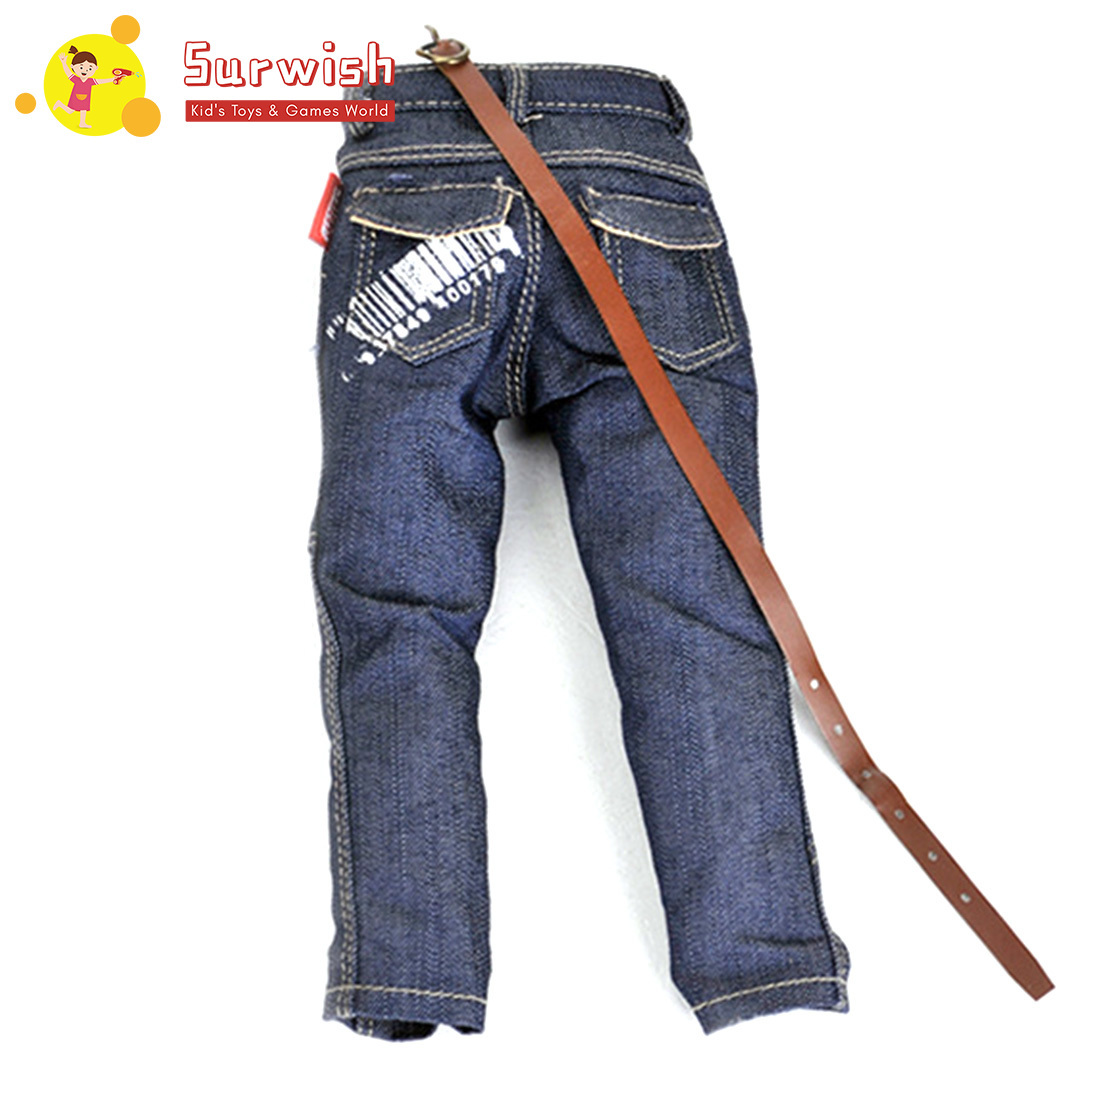 1:6 Scale Mini Fashionable Jeans Pants For Action Figure - Bar Code Printing Version